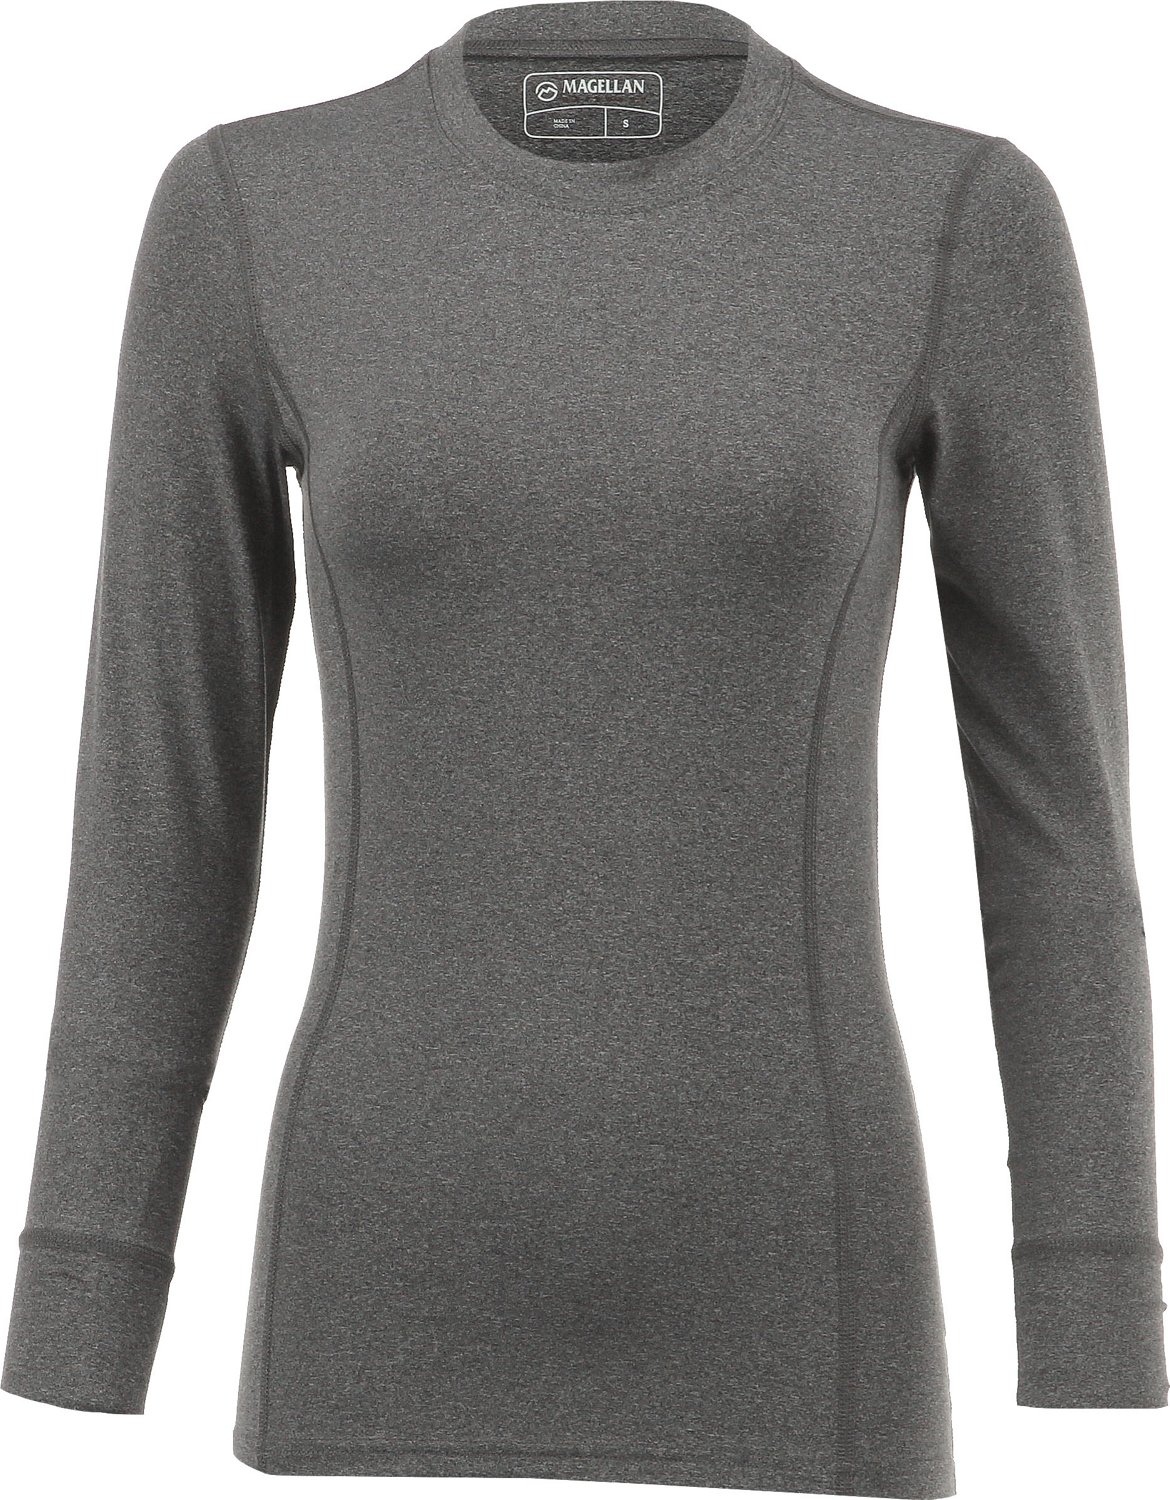 fc3610508e119 Display product reviews for Magellan Outdoors Women's Thermal Stretch  Baselayer Shirt